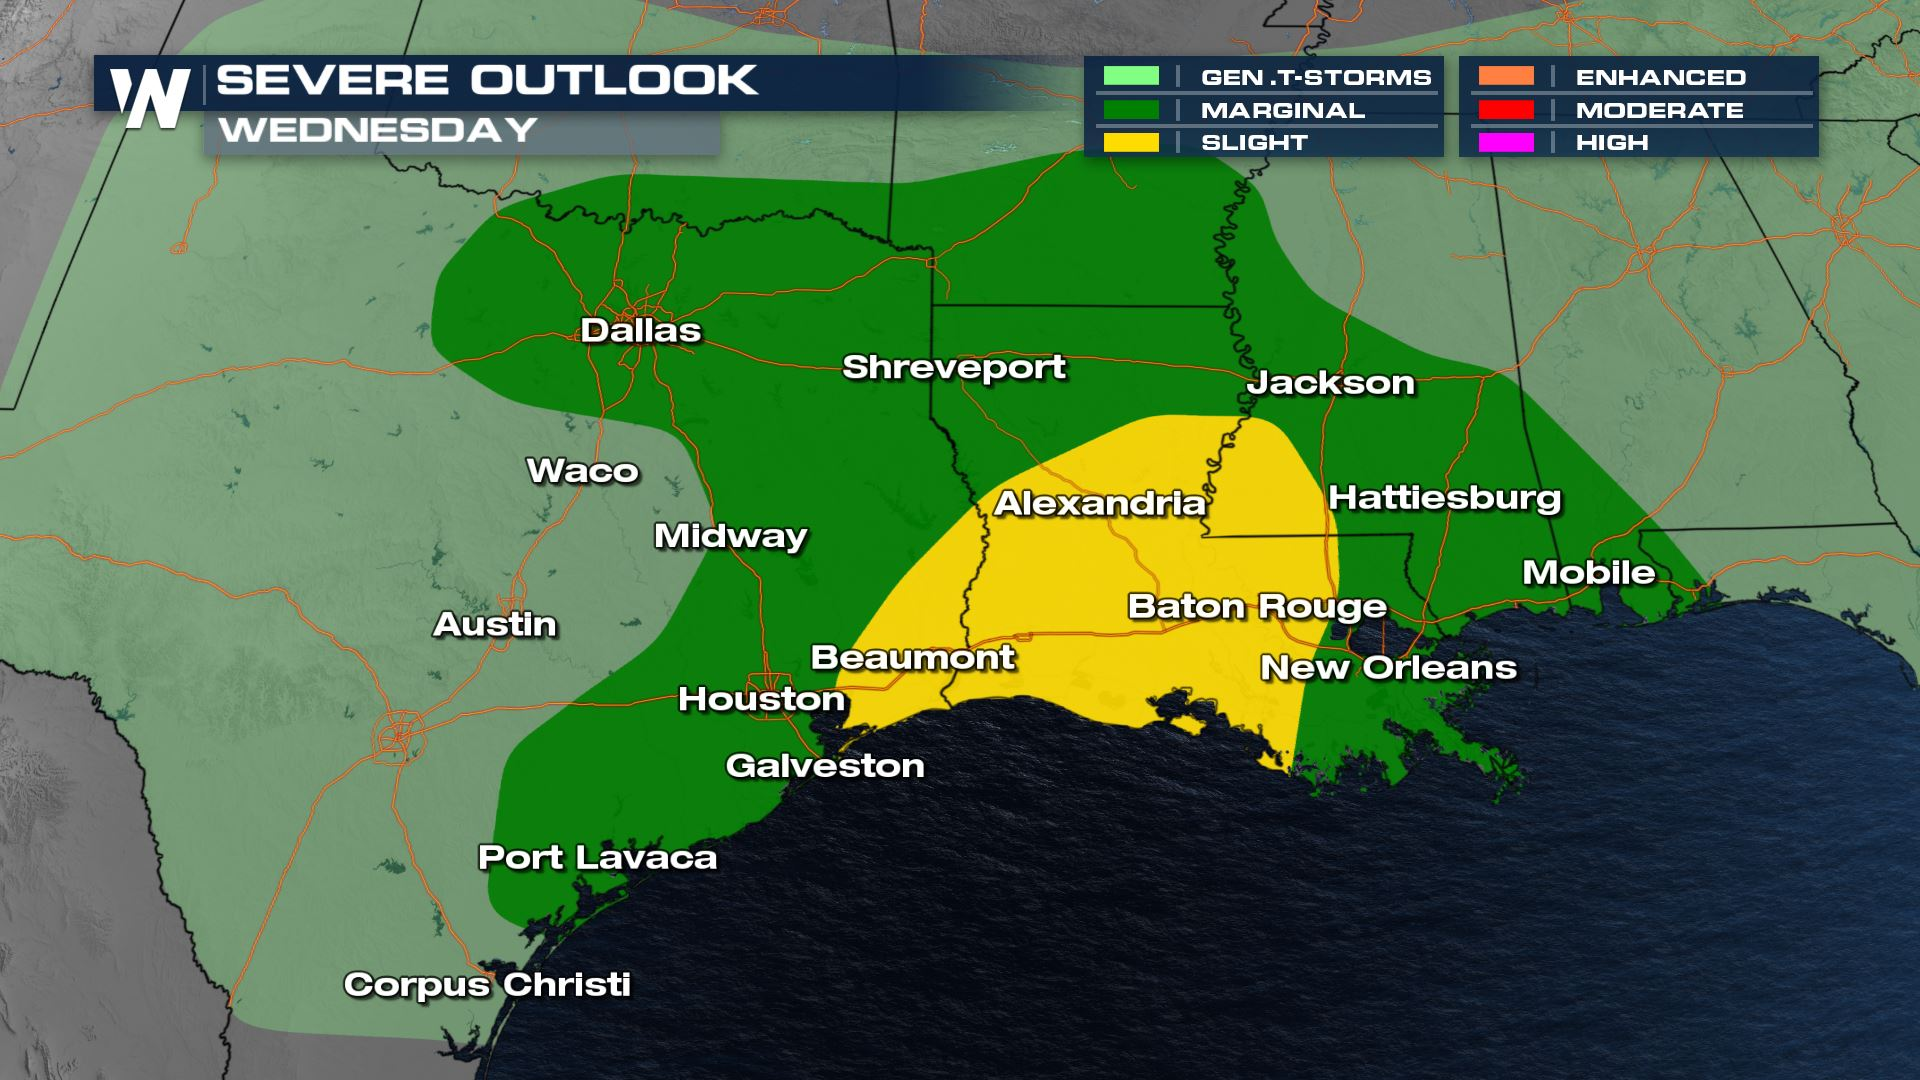 Severe Storm Chances Continue Wednesday from Oklahoma through the Gulf Coast